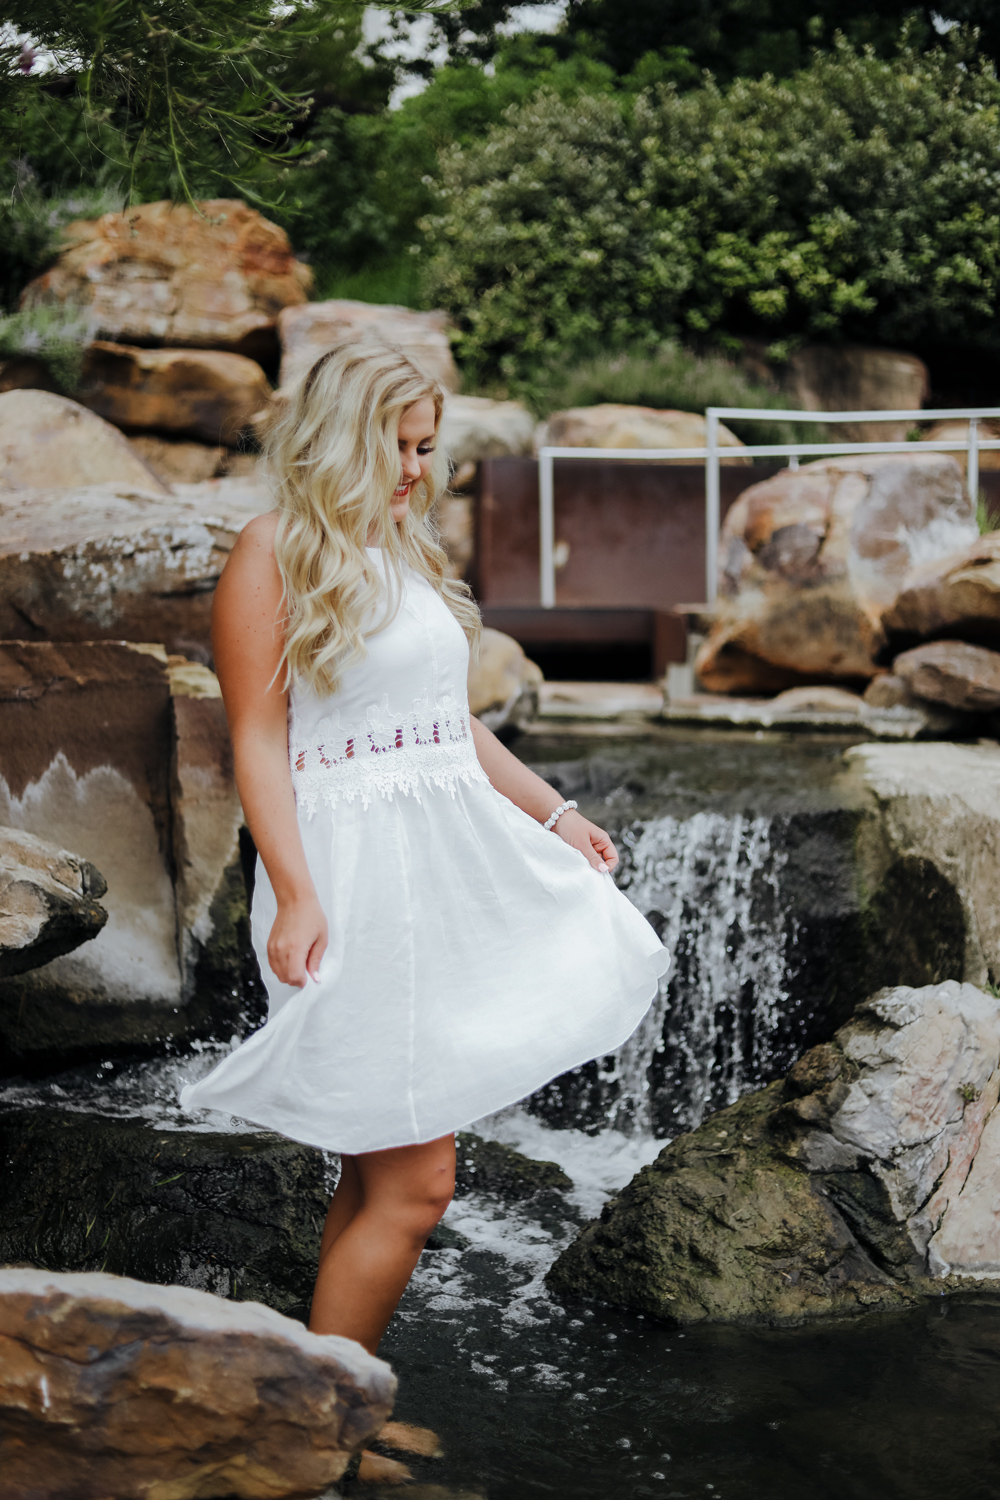 High school senior girl wearing white summer dress, dancing in a fountain at the Myriad Gardens in OKC.